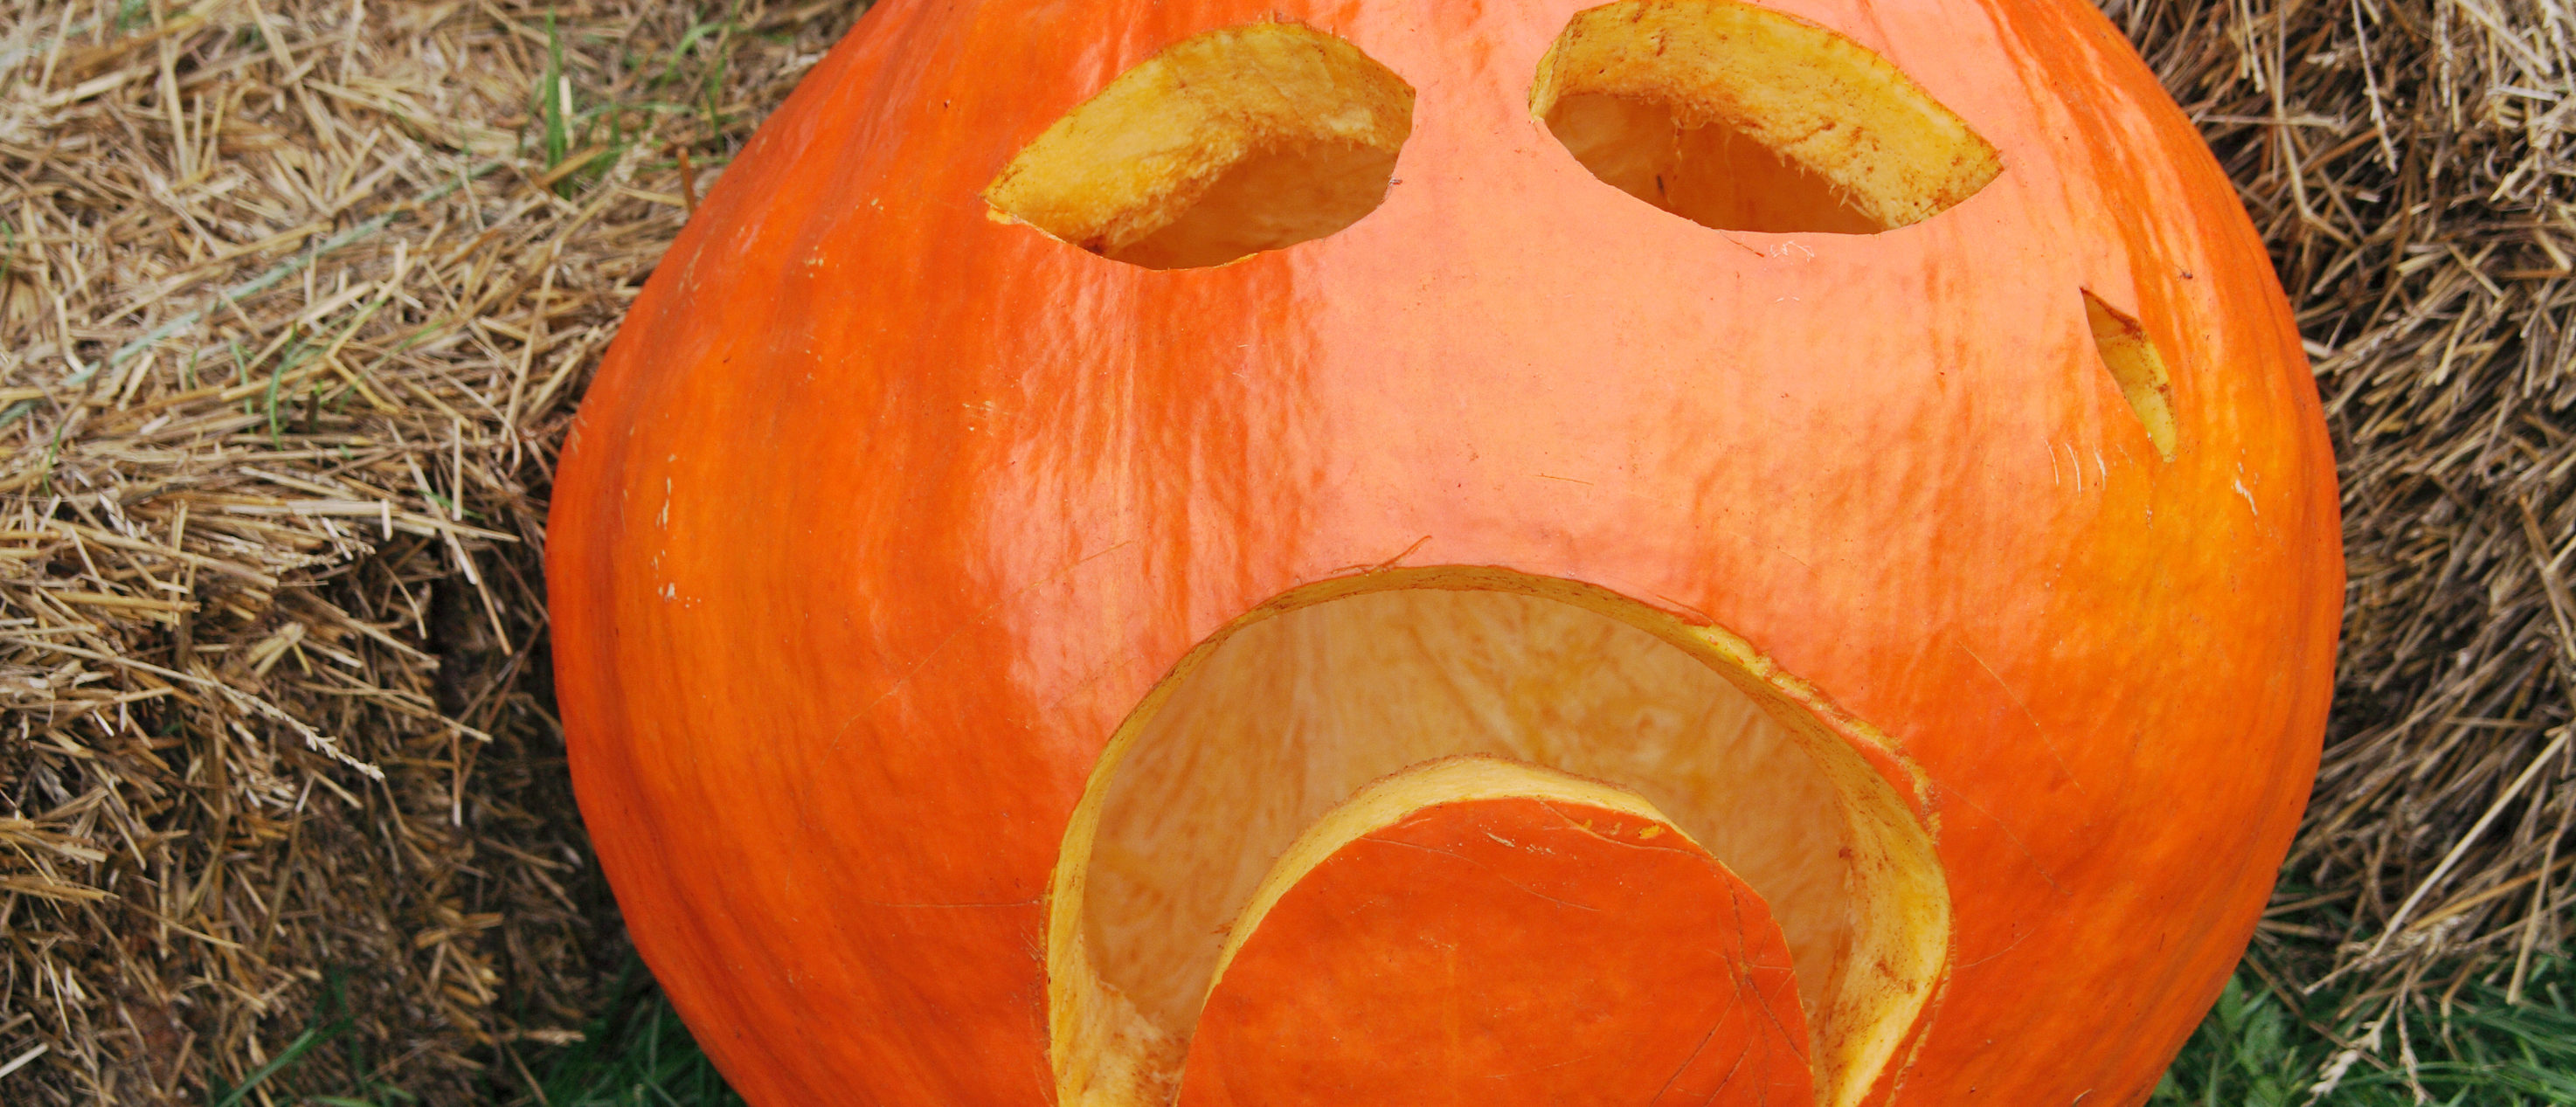 Jail Time For Trick-Or-Treaters: Chesapeake Considers Amending Infamous Policy